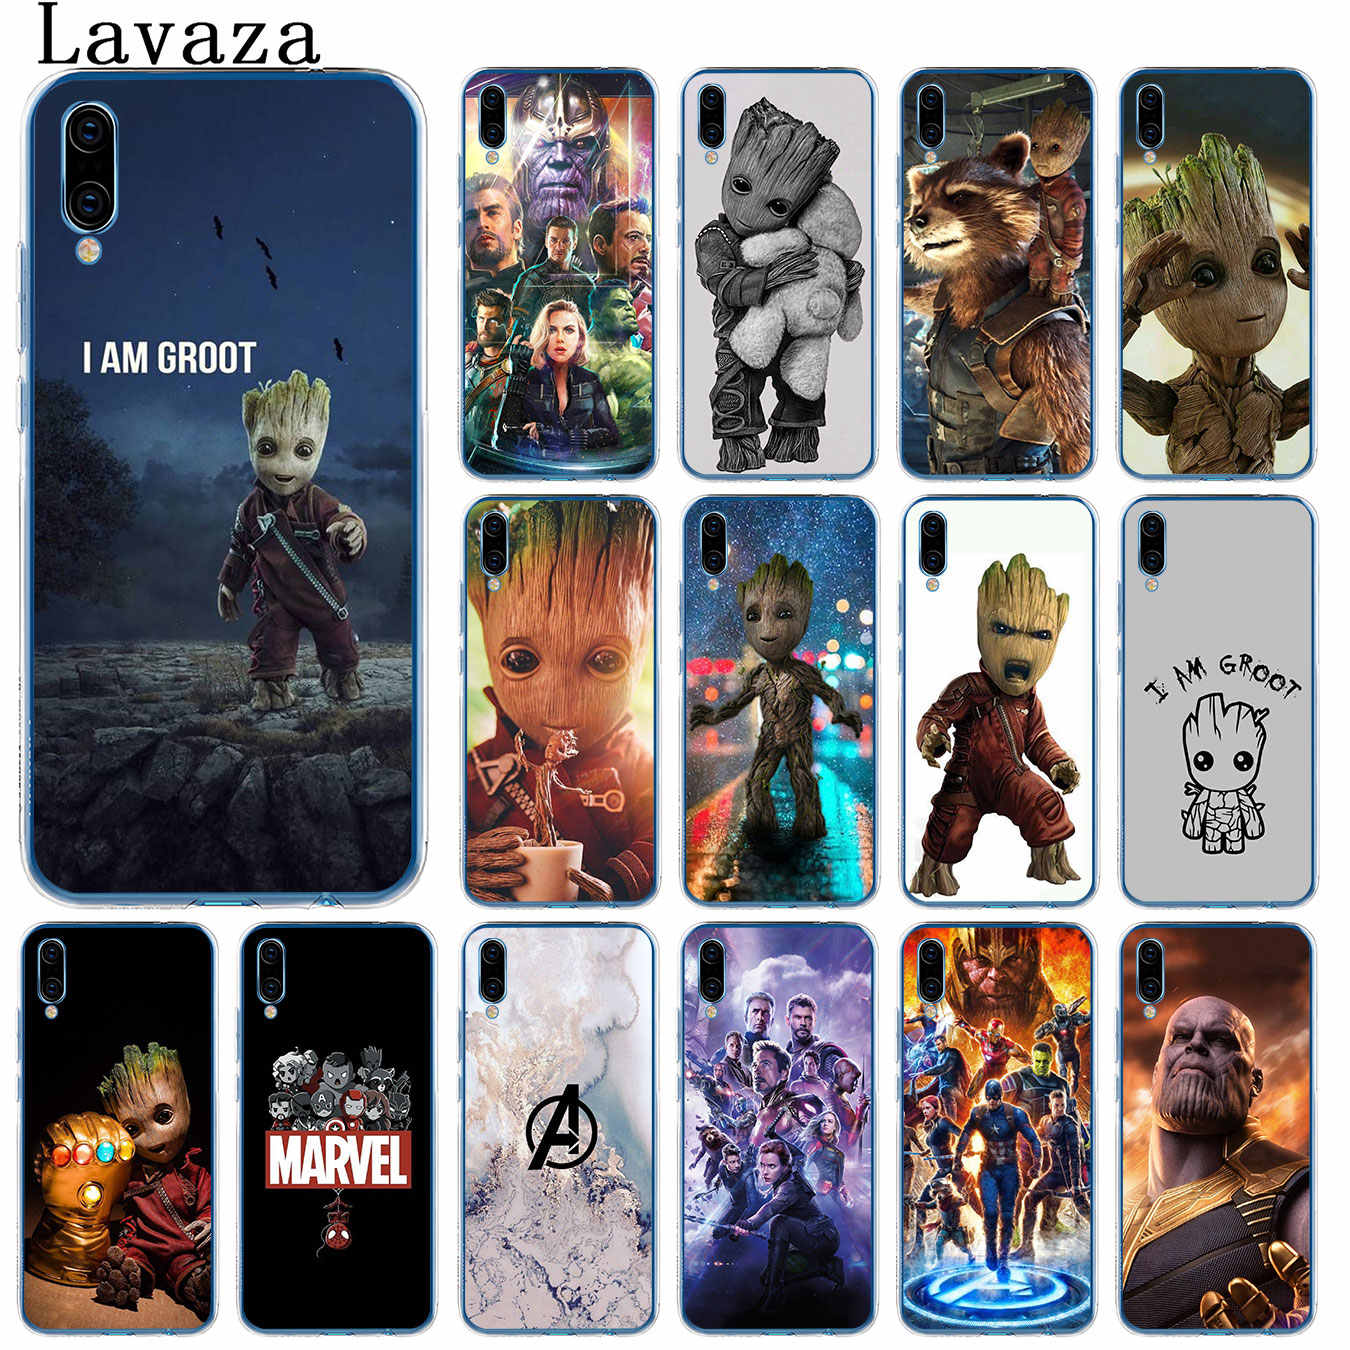 Guardians of the for Galaxy Marvel Avengers Endgame Case for Huawei P30 P20 Pro P9 P10 Plus P8 Lite Mini 2017 P smart Z 2019